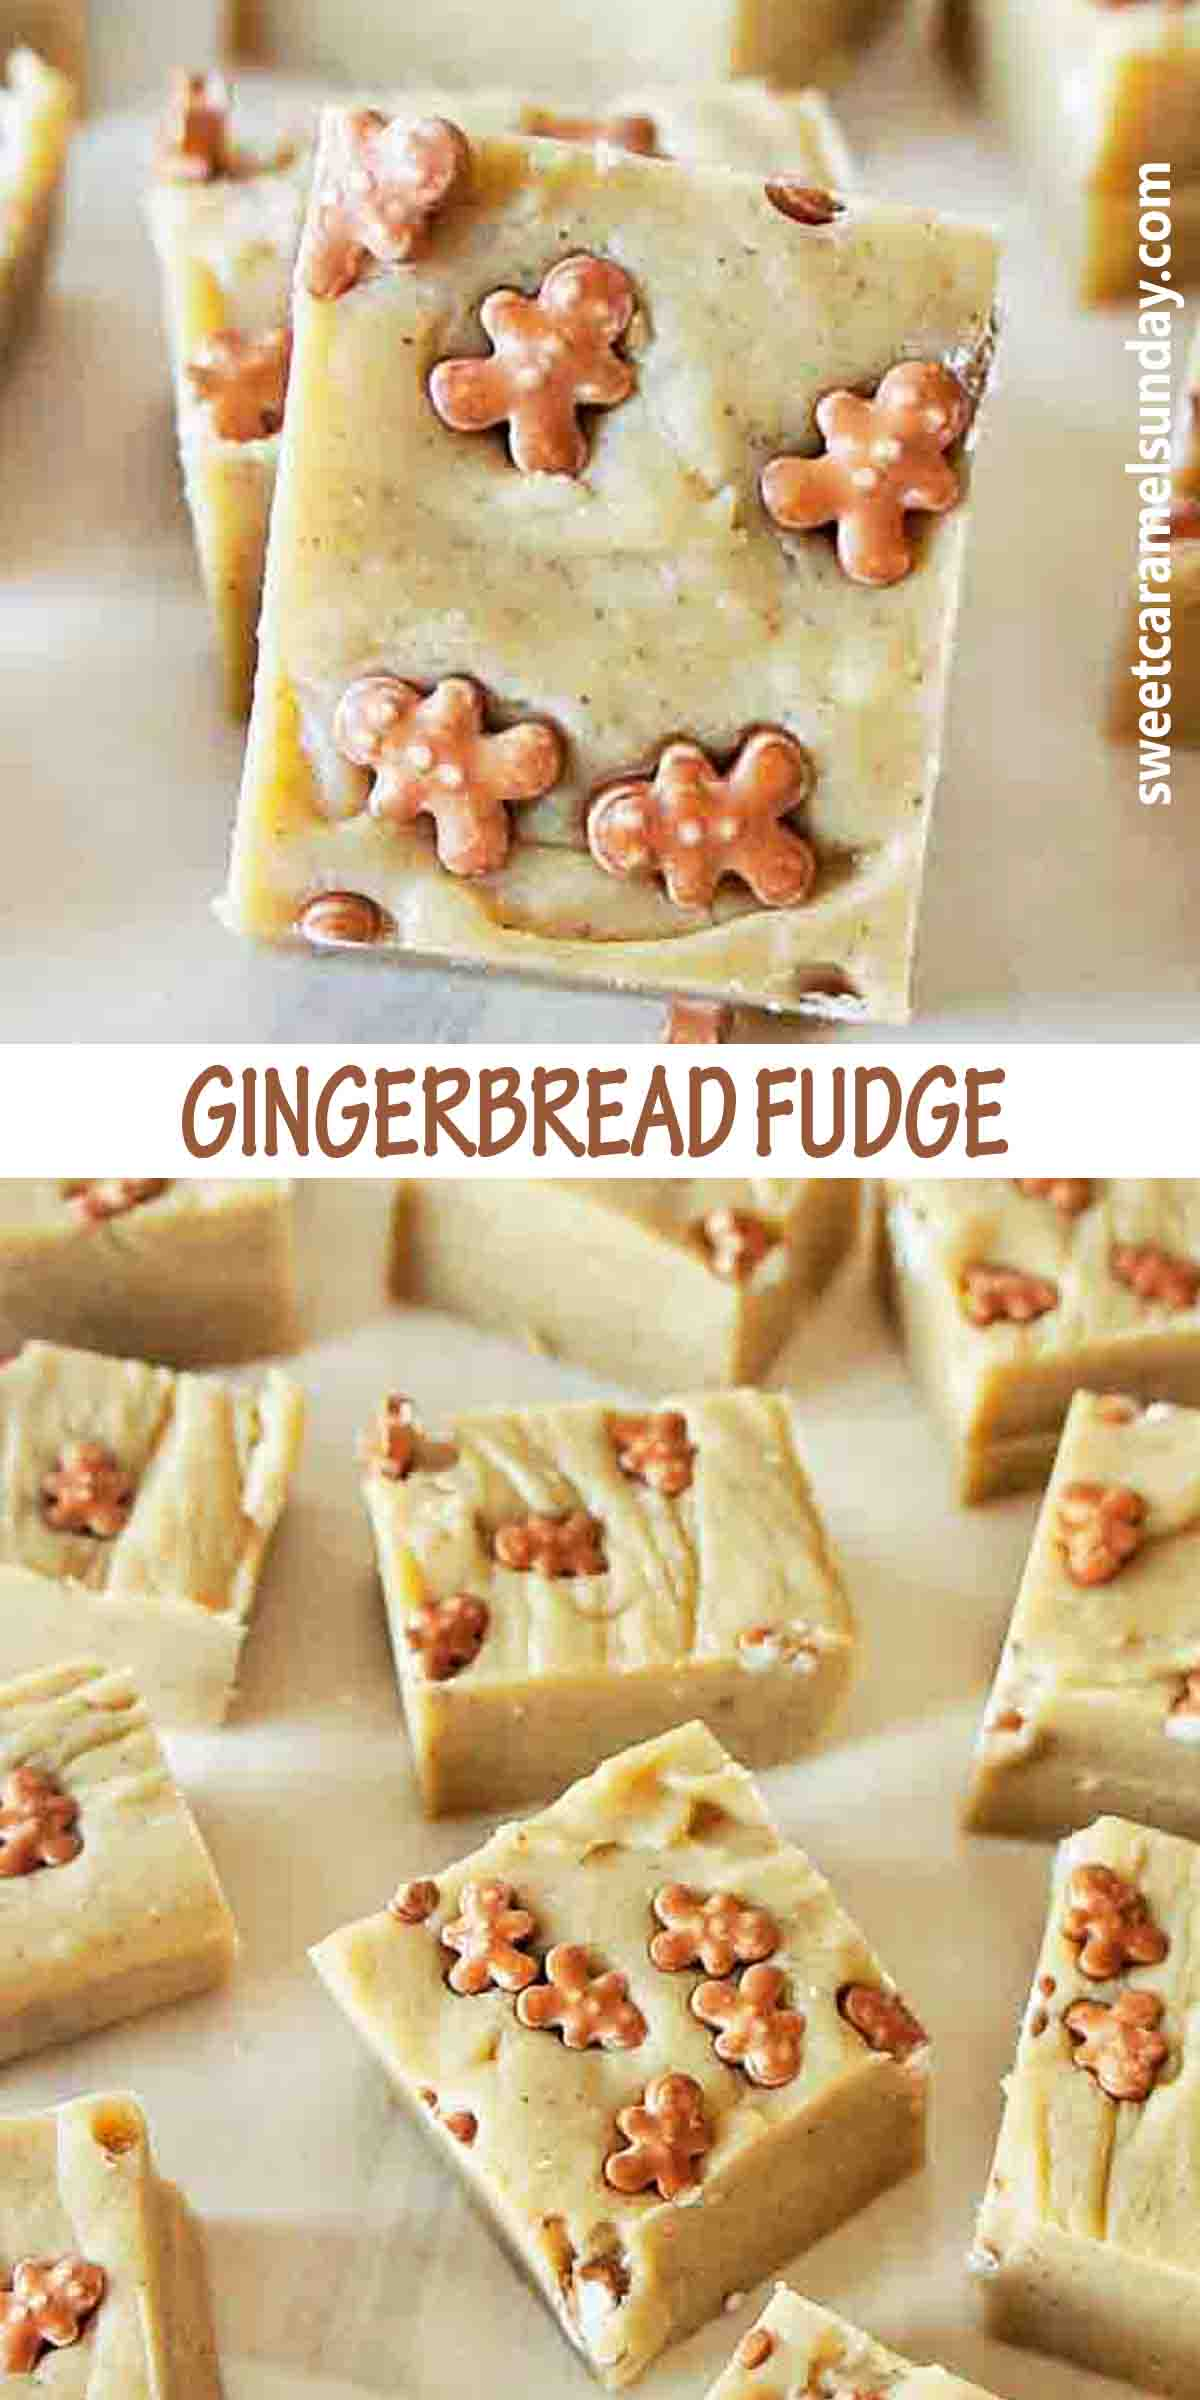 Gingerbread Fudge with text over lay